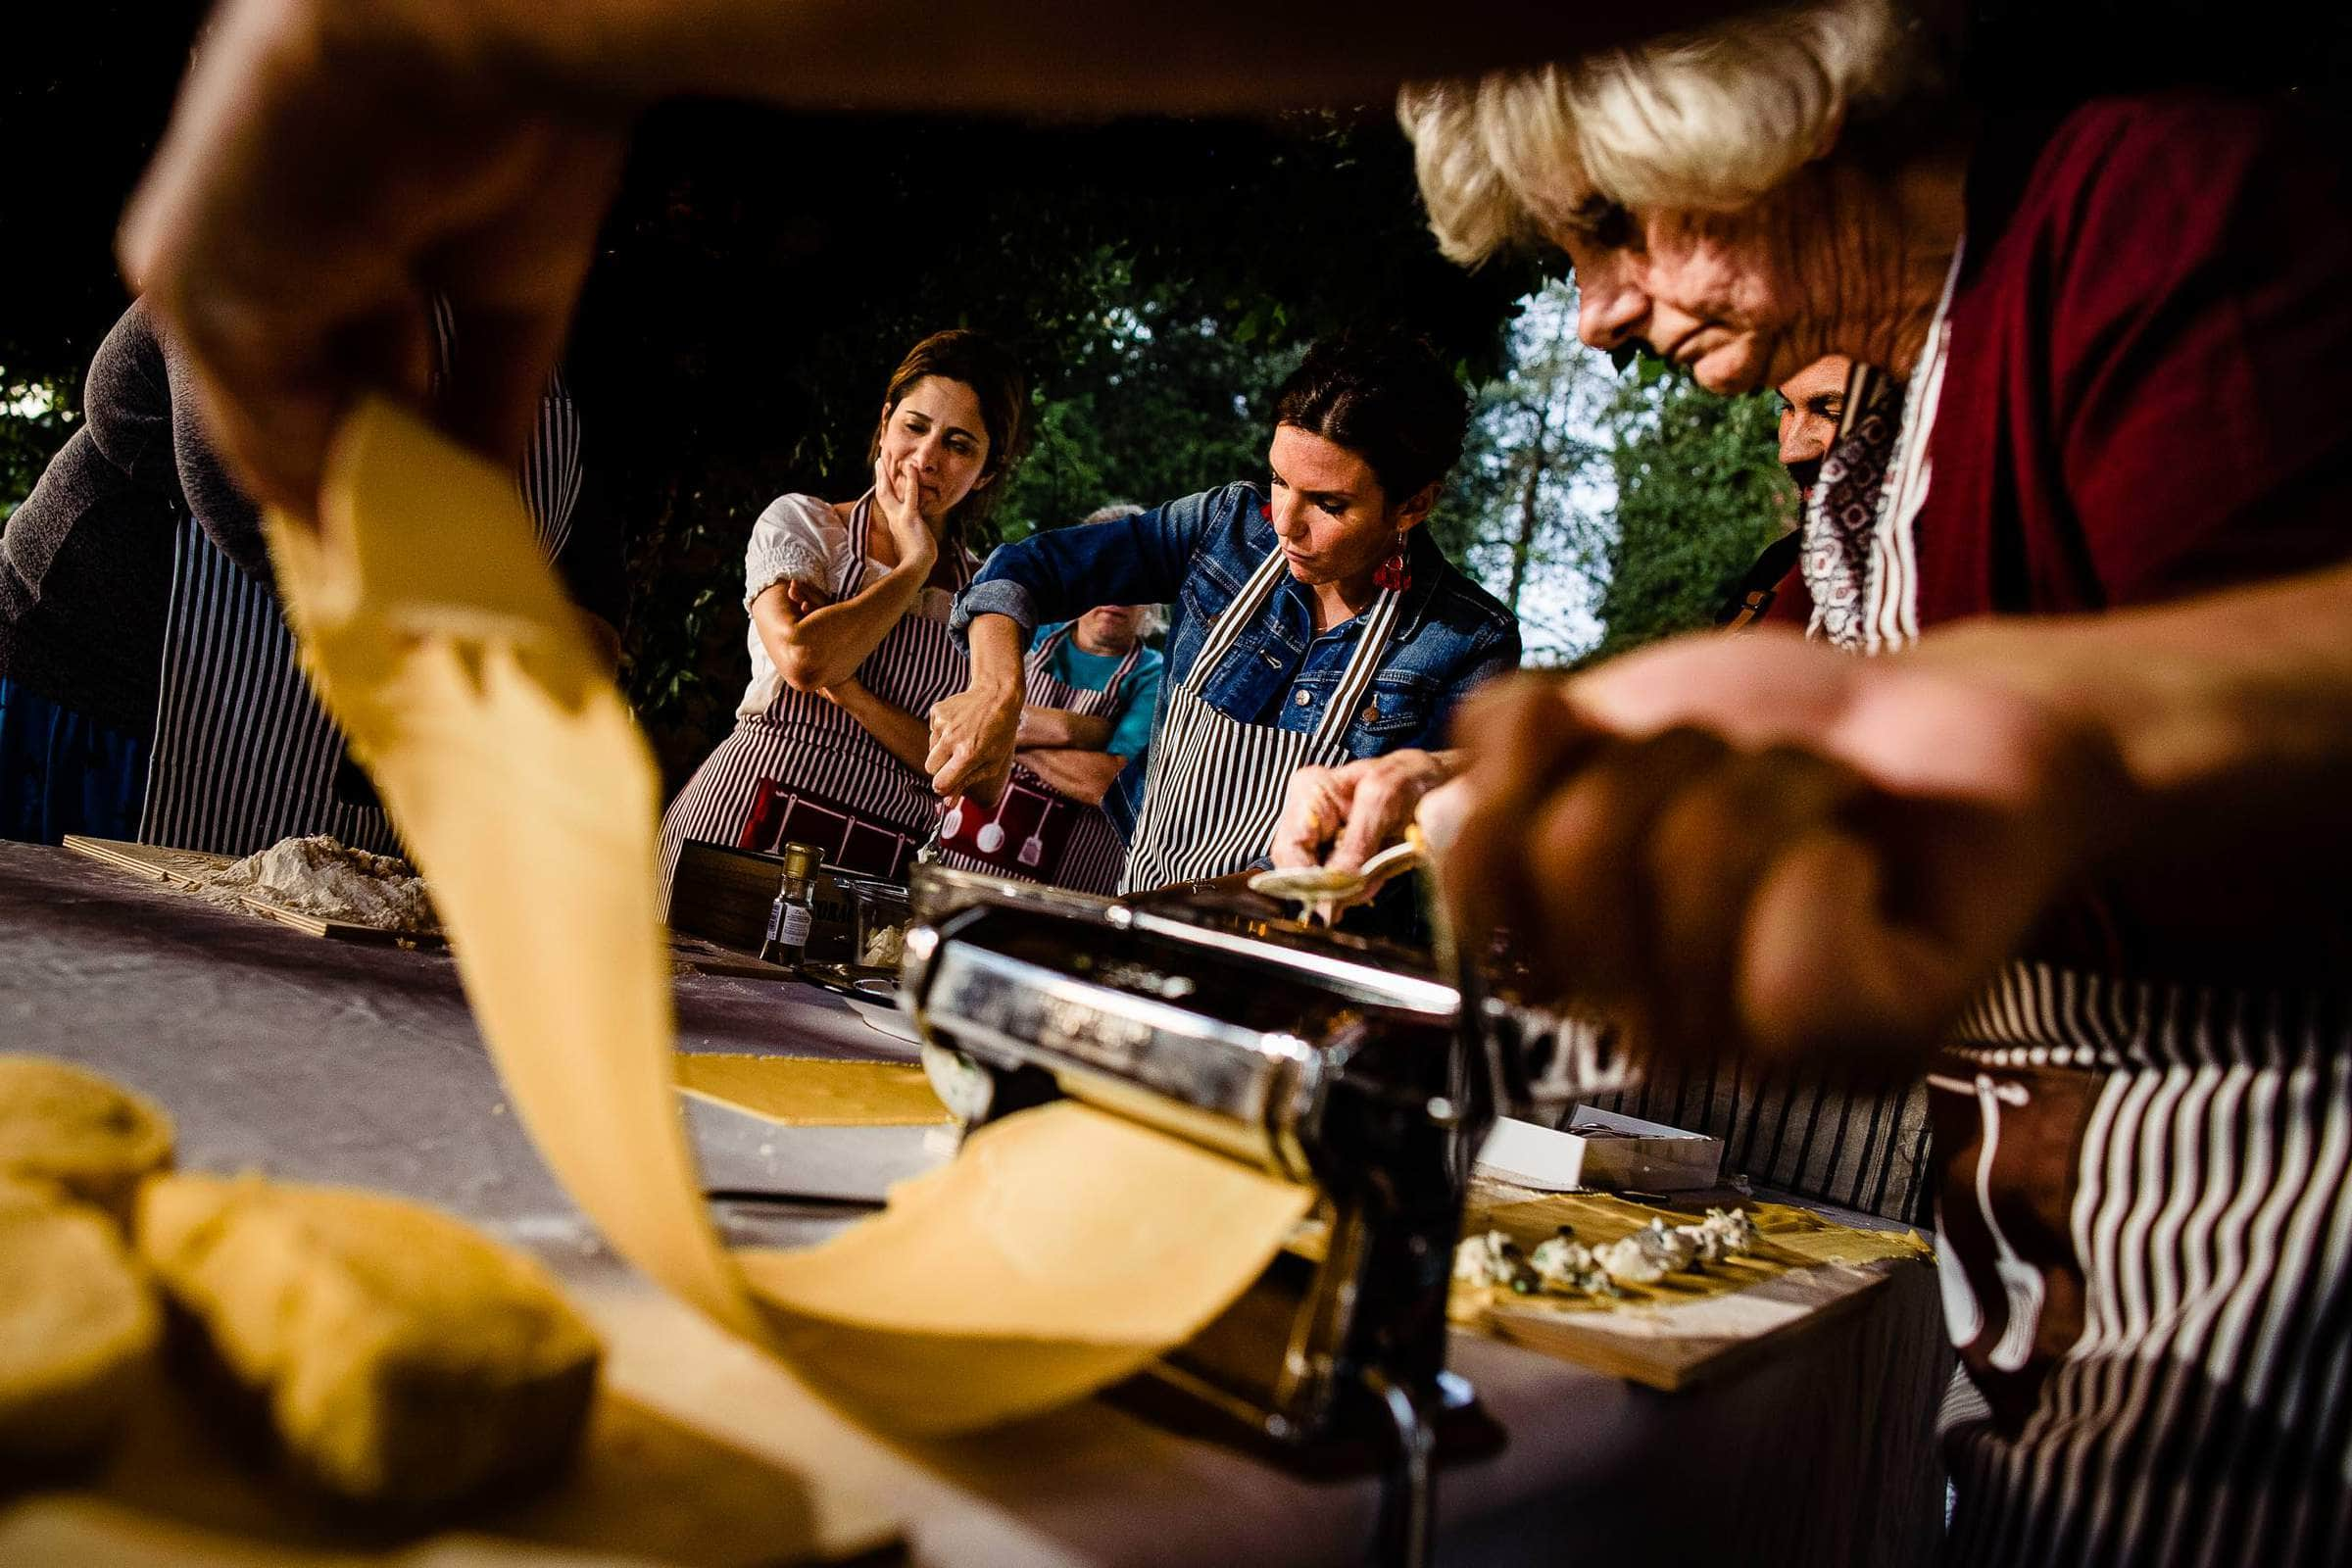 Bride, groom and guests enjoying a day making pasta and drinking wine in a nearby village during their Villa Tre Grazie wedding celebration near Todi, Italy.